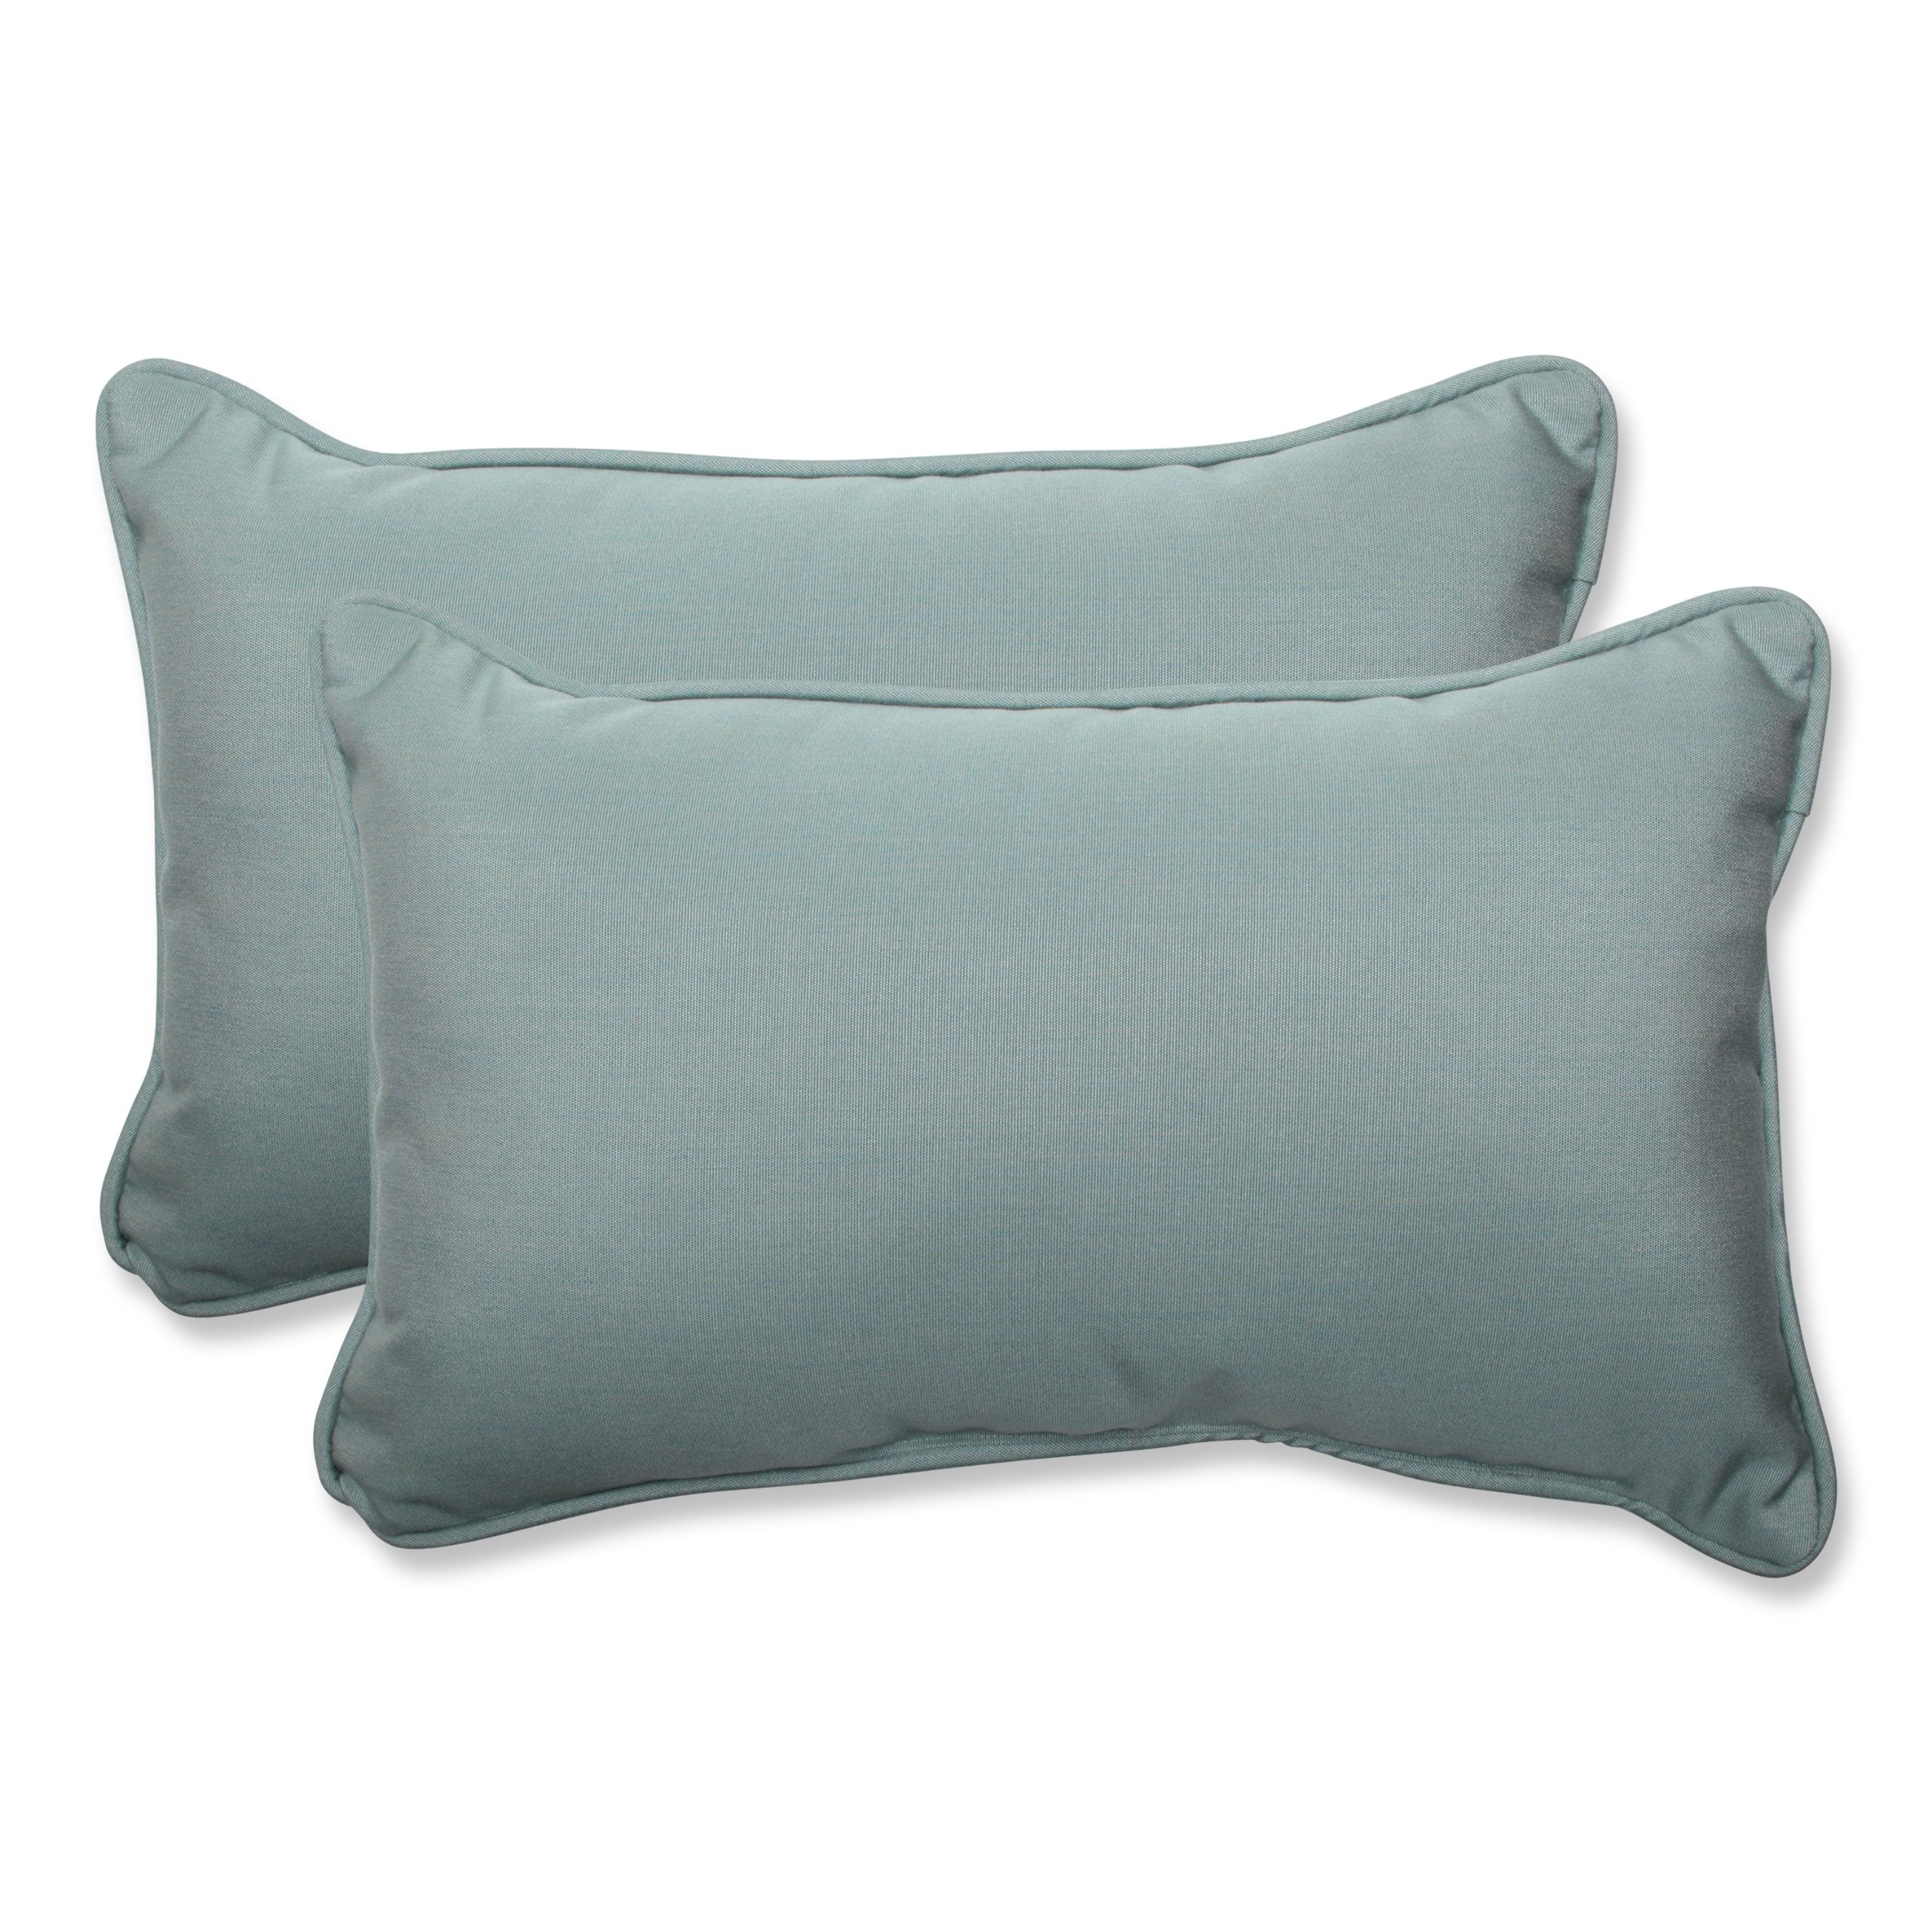 Pillow Perfect Indoor/Outdoor Rectangular Throw Pillow (Set of 2) with Sunbrella Canvas Spa Fabric, 18.5 in. L X 11.5 in. W X 5 in. D